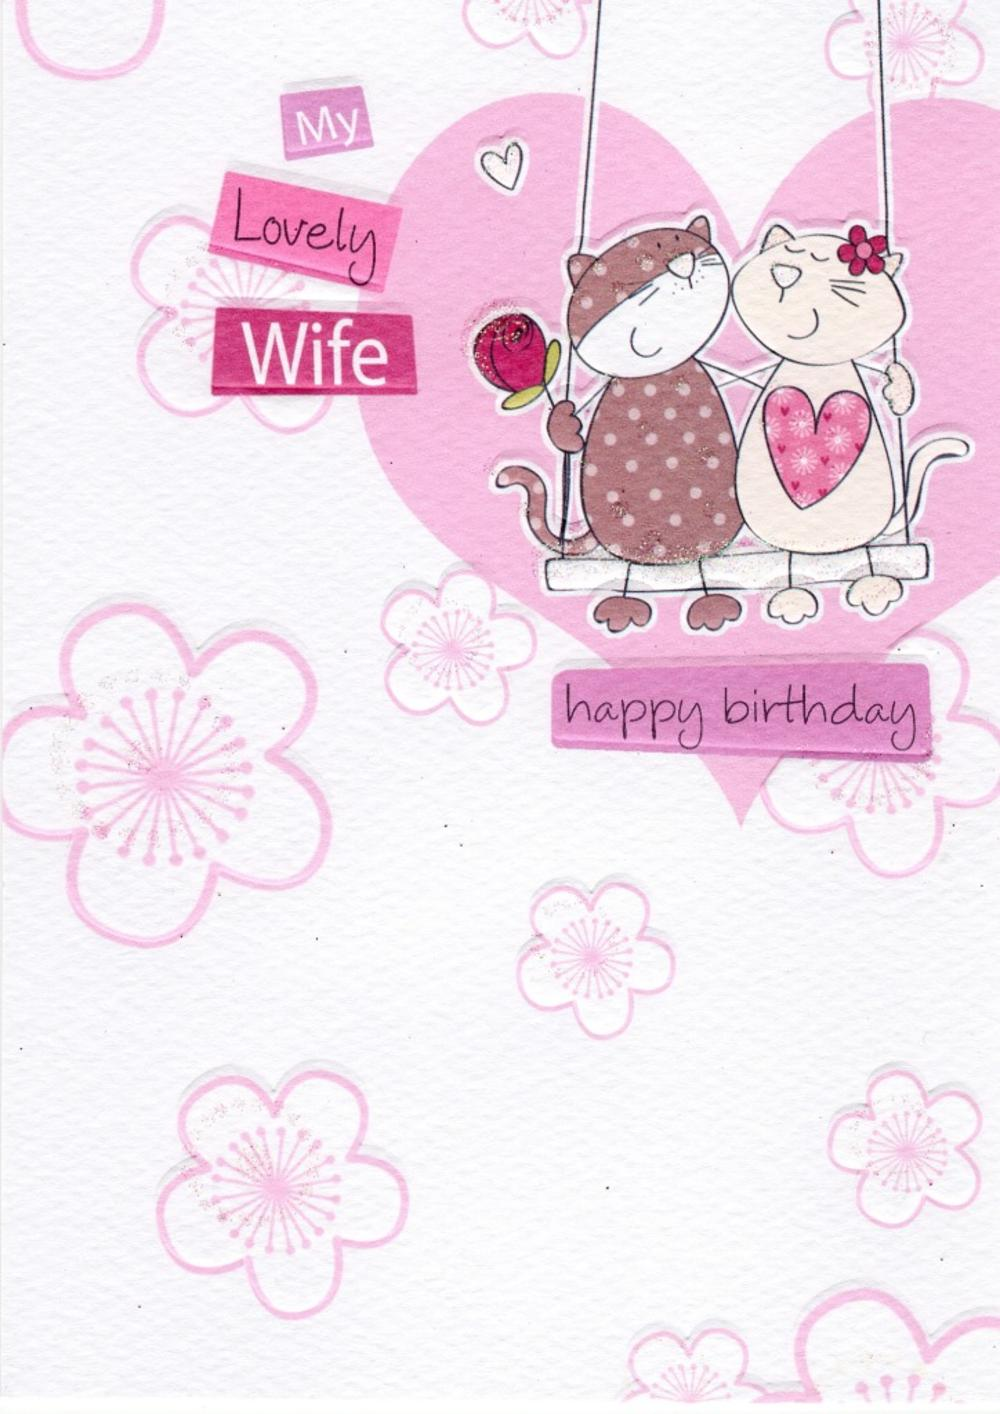 My Lovely Wife Birthday Greeting Card